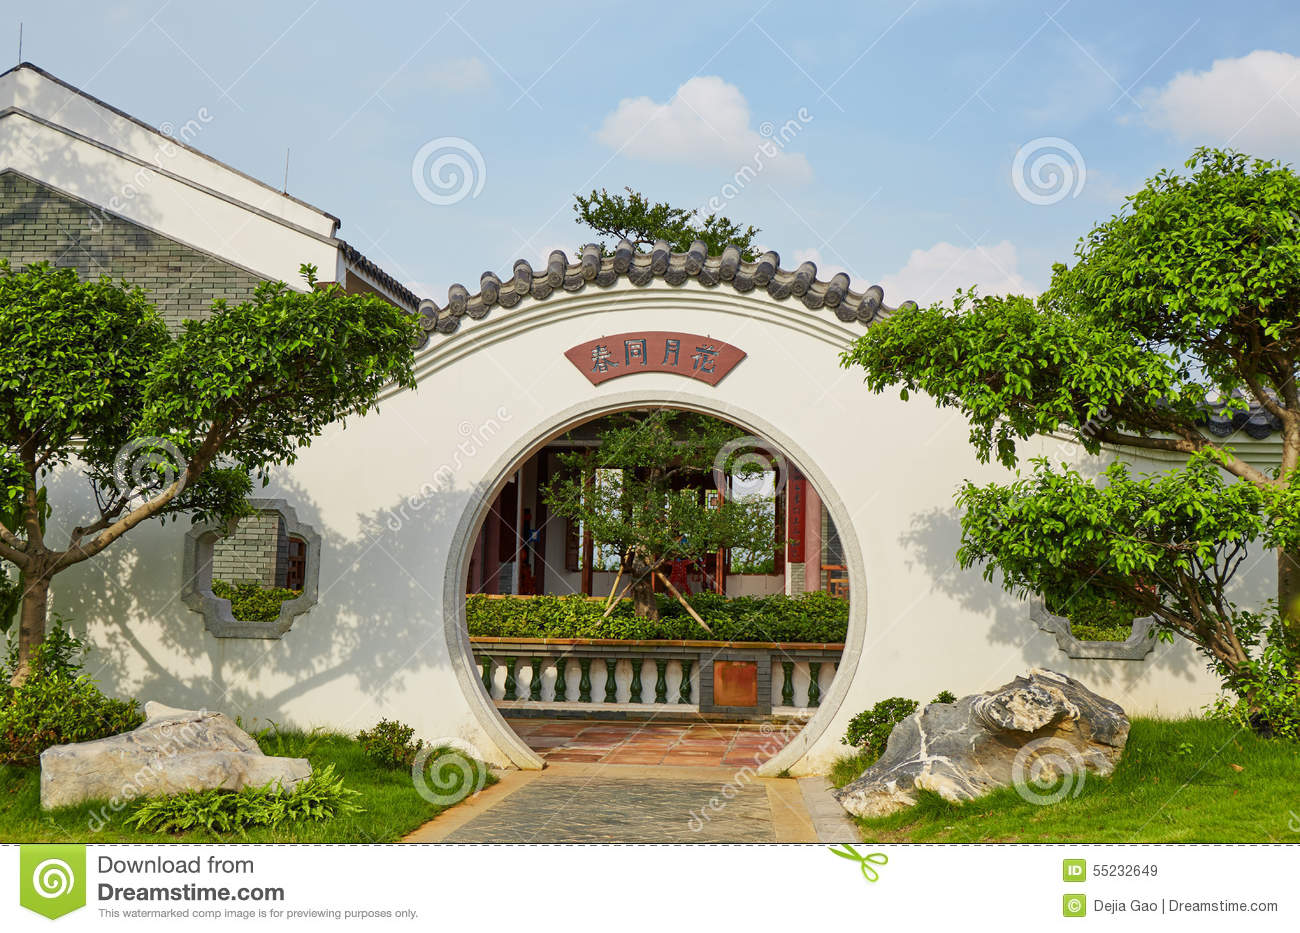 Chinese Round Gate In Backyard Landscaping Garden Stock